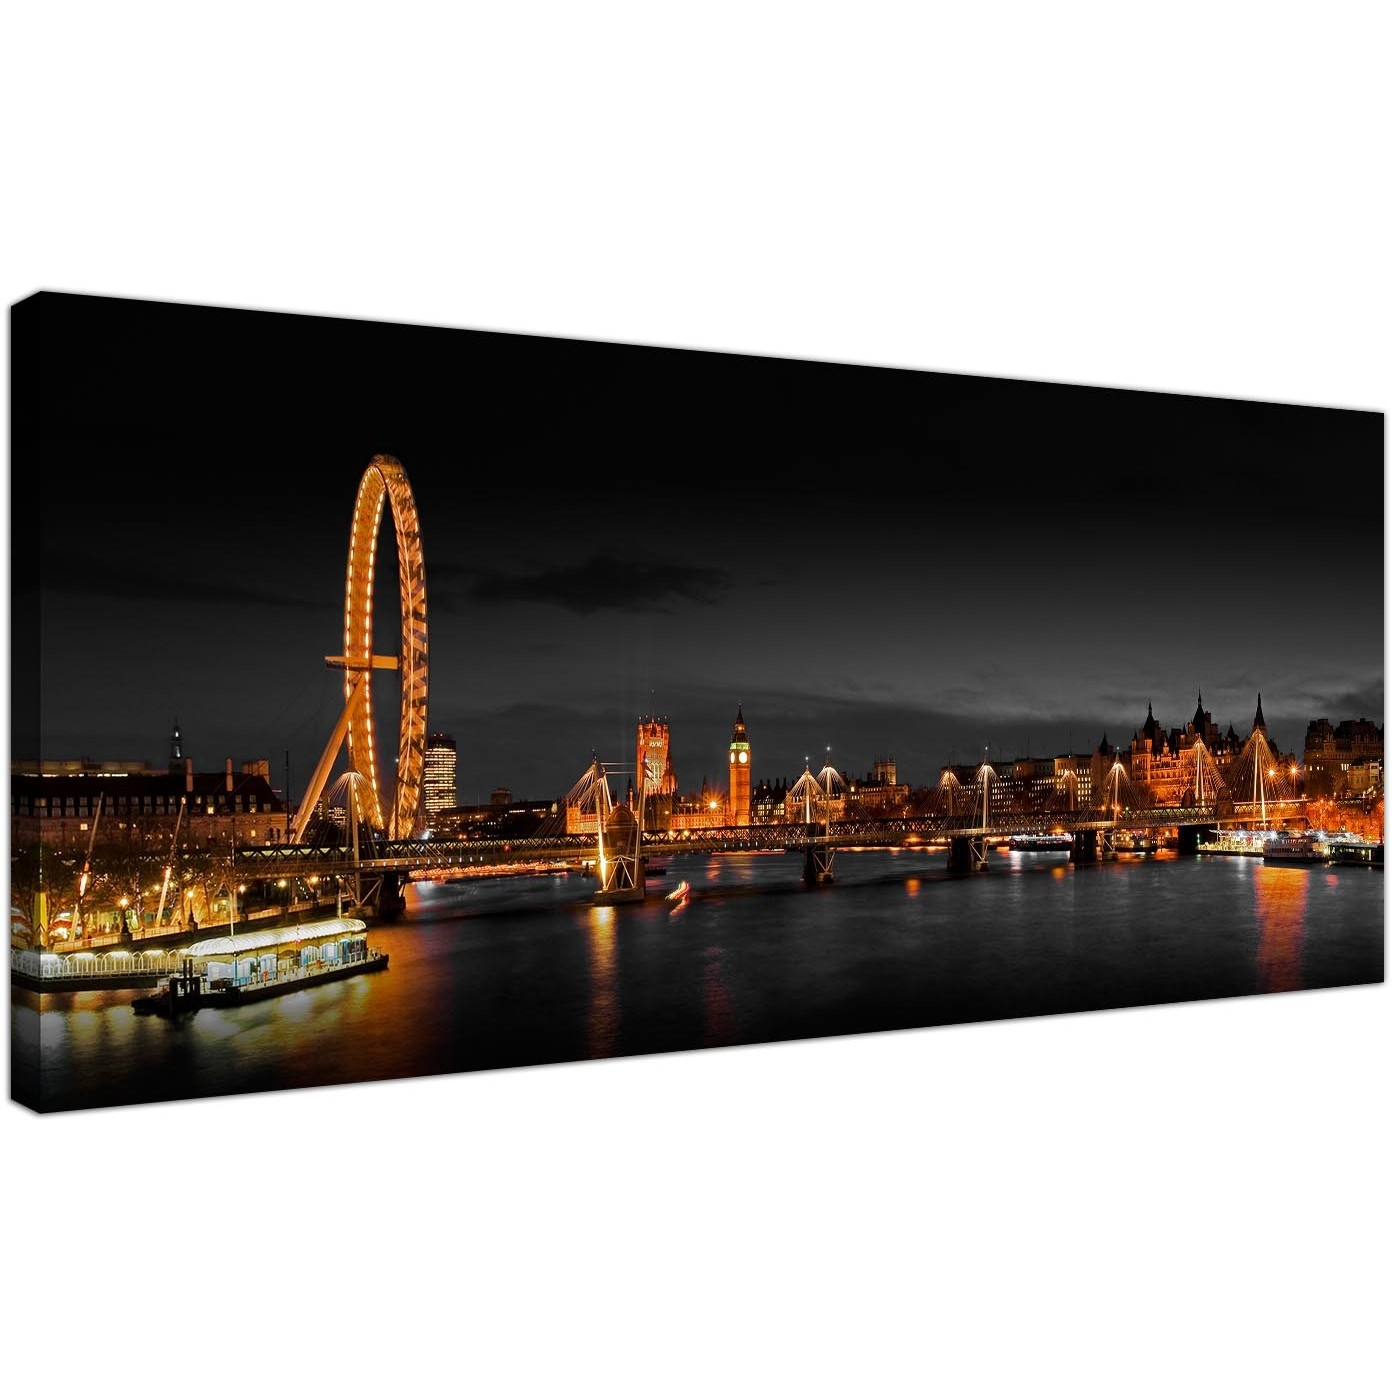 Panoramic Canvas Wall Art Of London Eye At Night For Your Living Room With Most Recently Released Panoramic Wall Art (View 3 of 15)